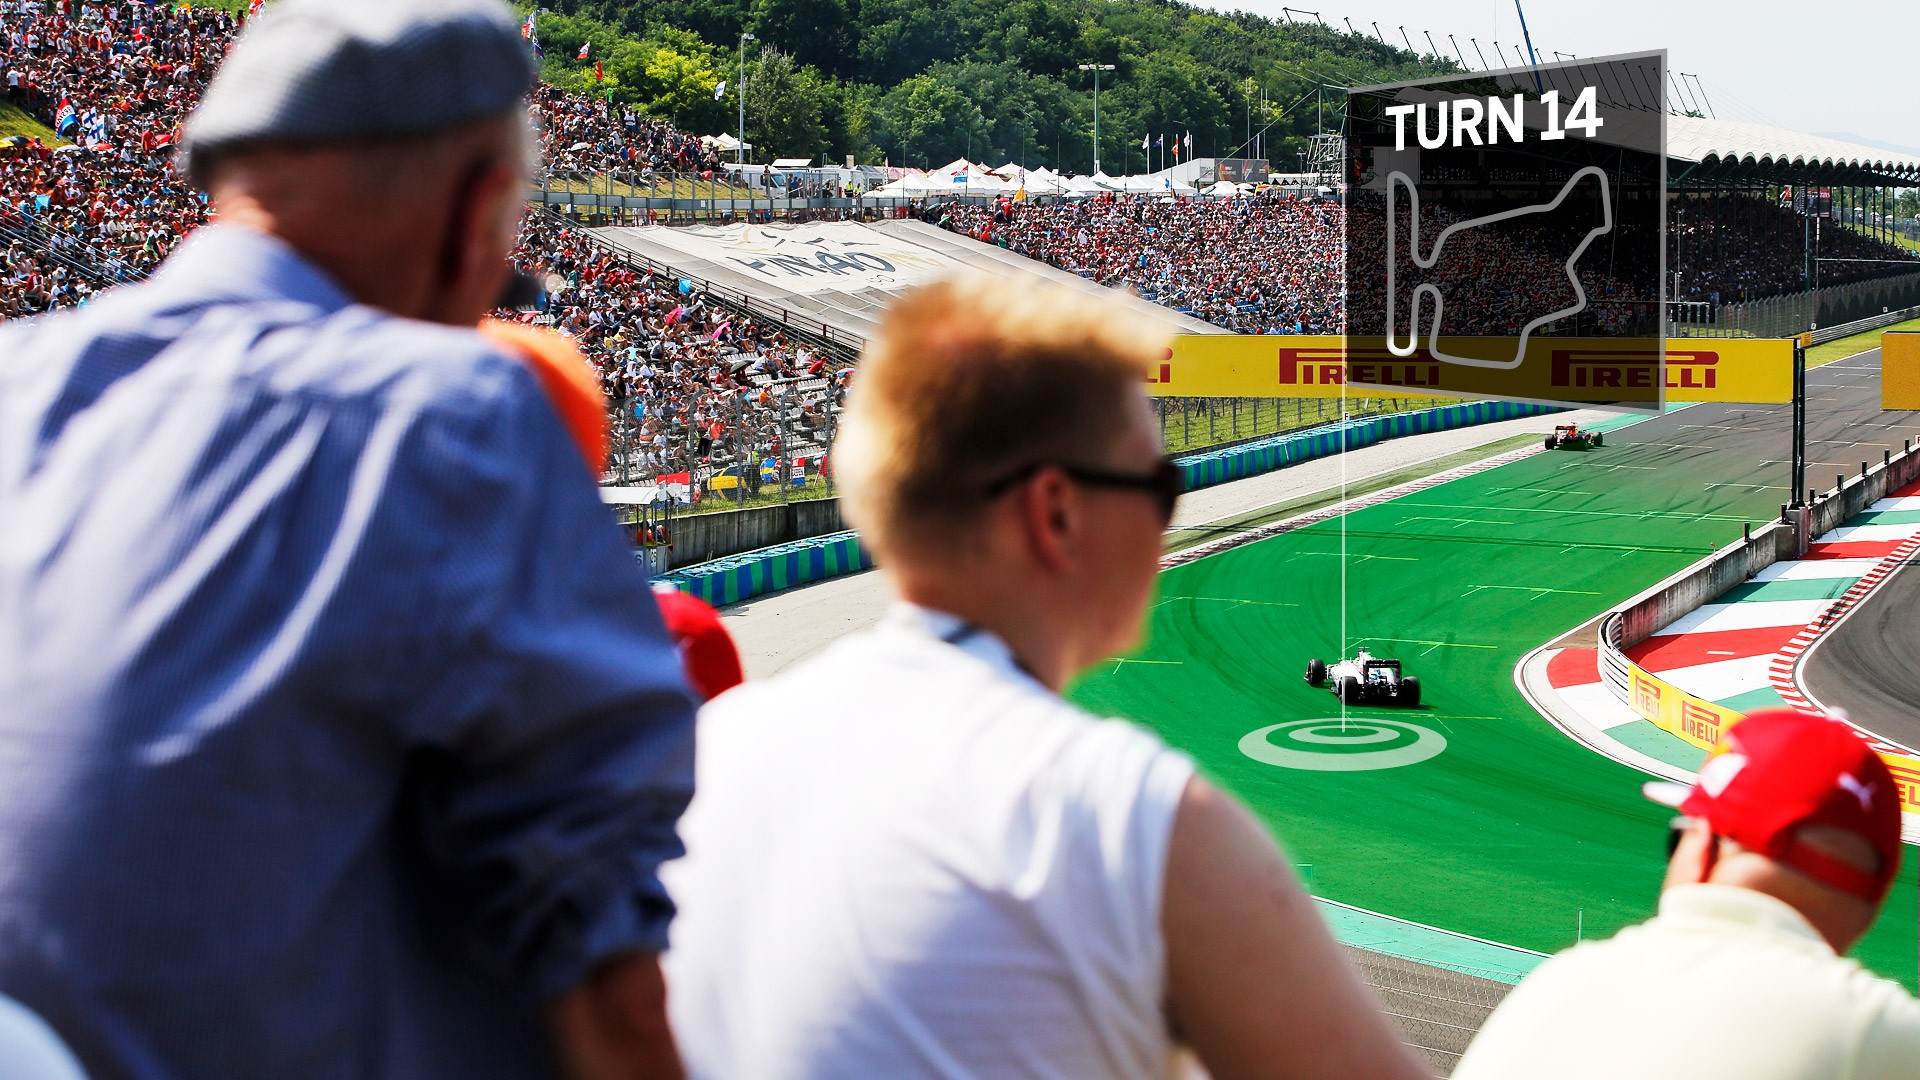 https://www.formula1.com/content/fom-website/en/latest/features/2017/7/need-to-know--hungary/_jcr_content/featureContent/image_0.img.jpg/1500627363949.jpg